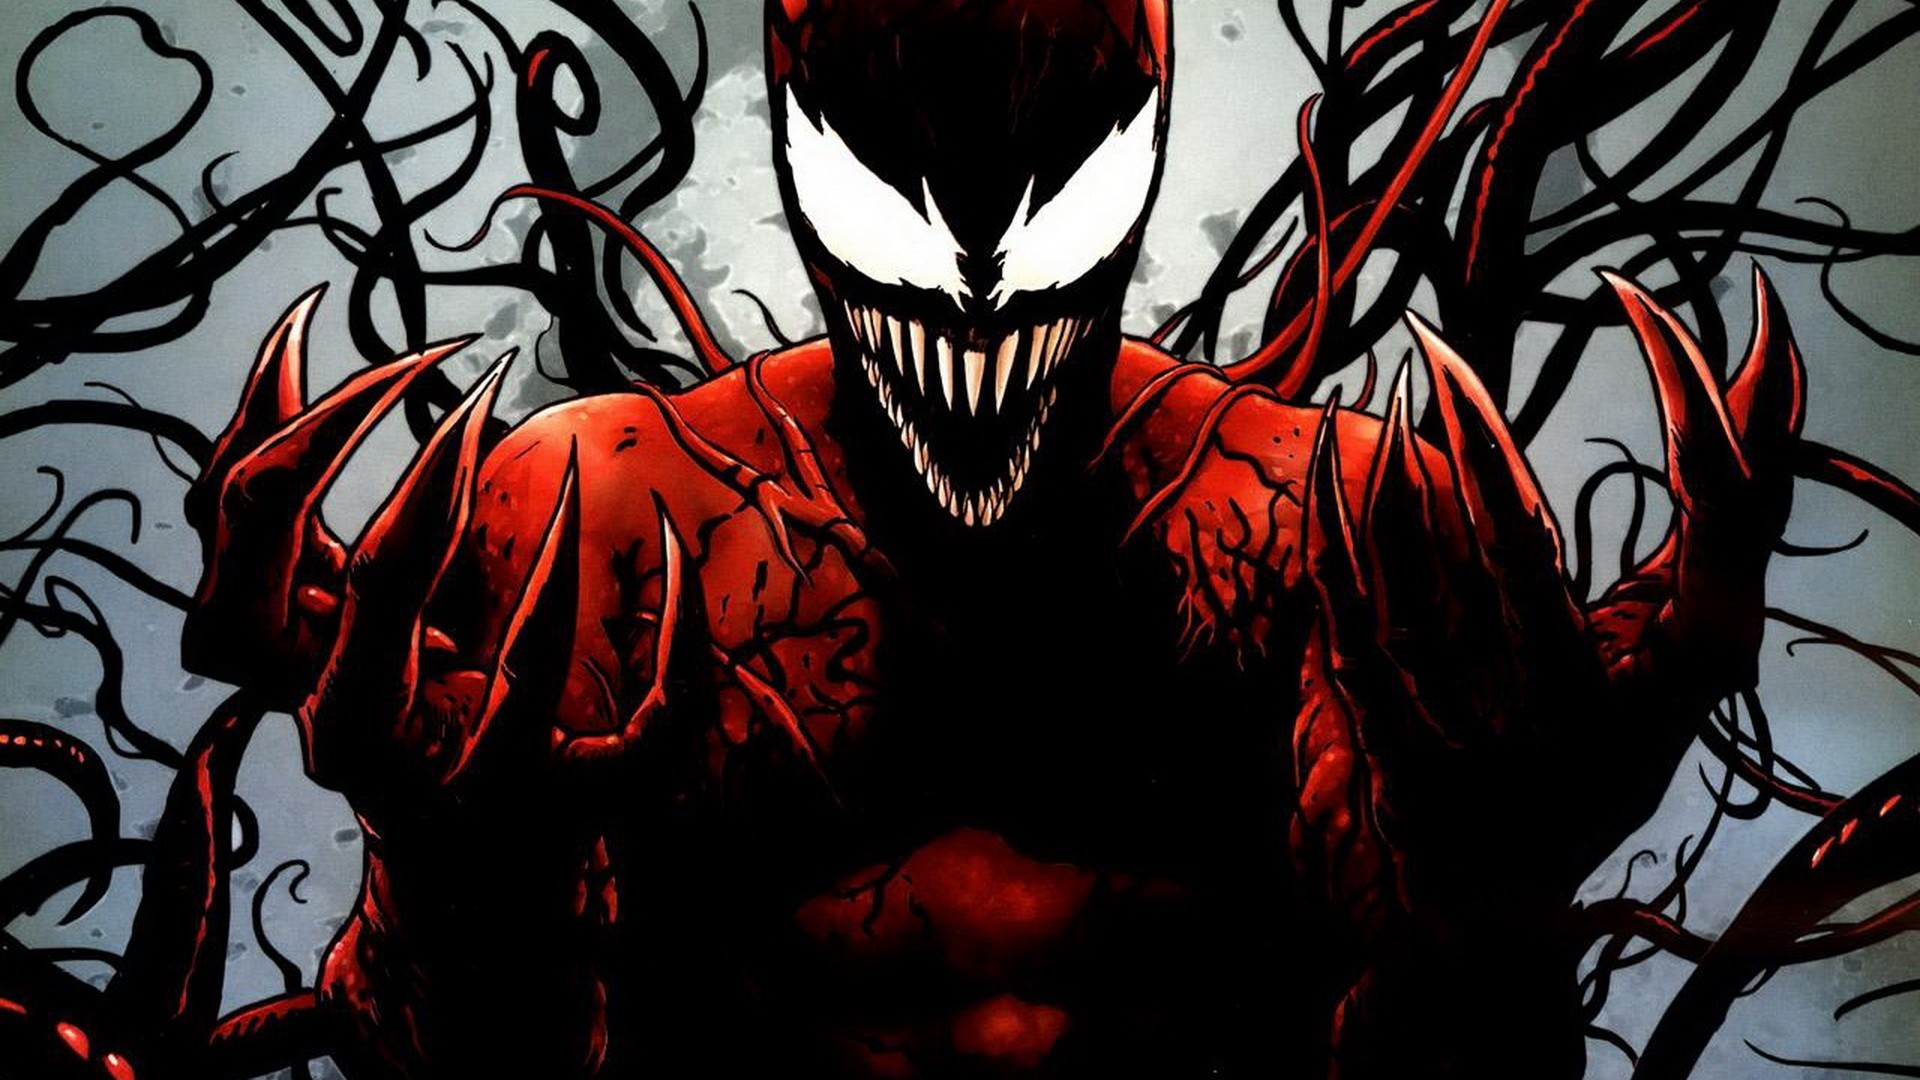 2560x2048 Carnage Marvel Wallpapers